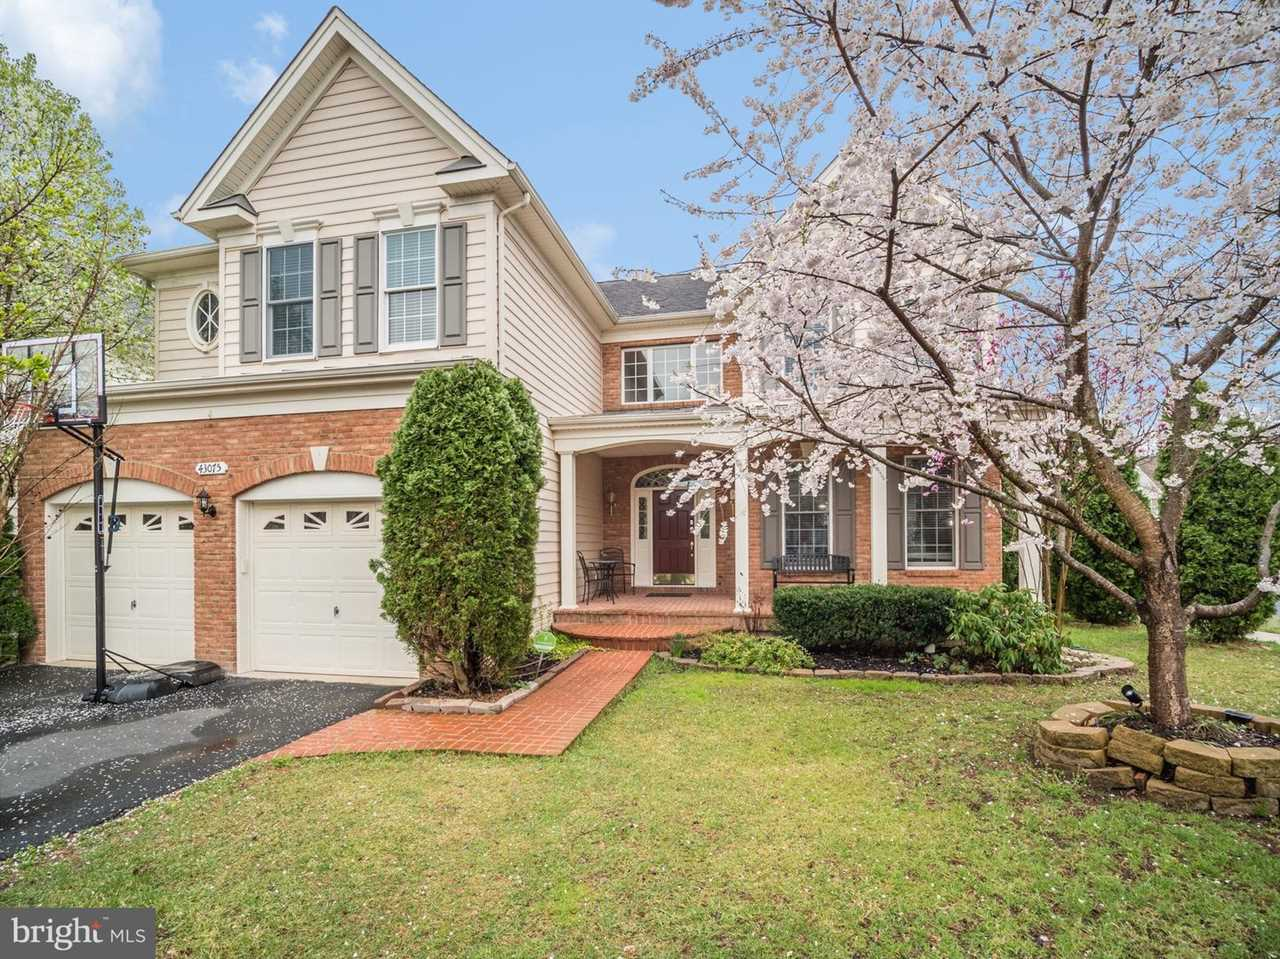 43075 Barons St Home for Sale in Chantilly, VA